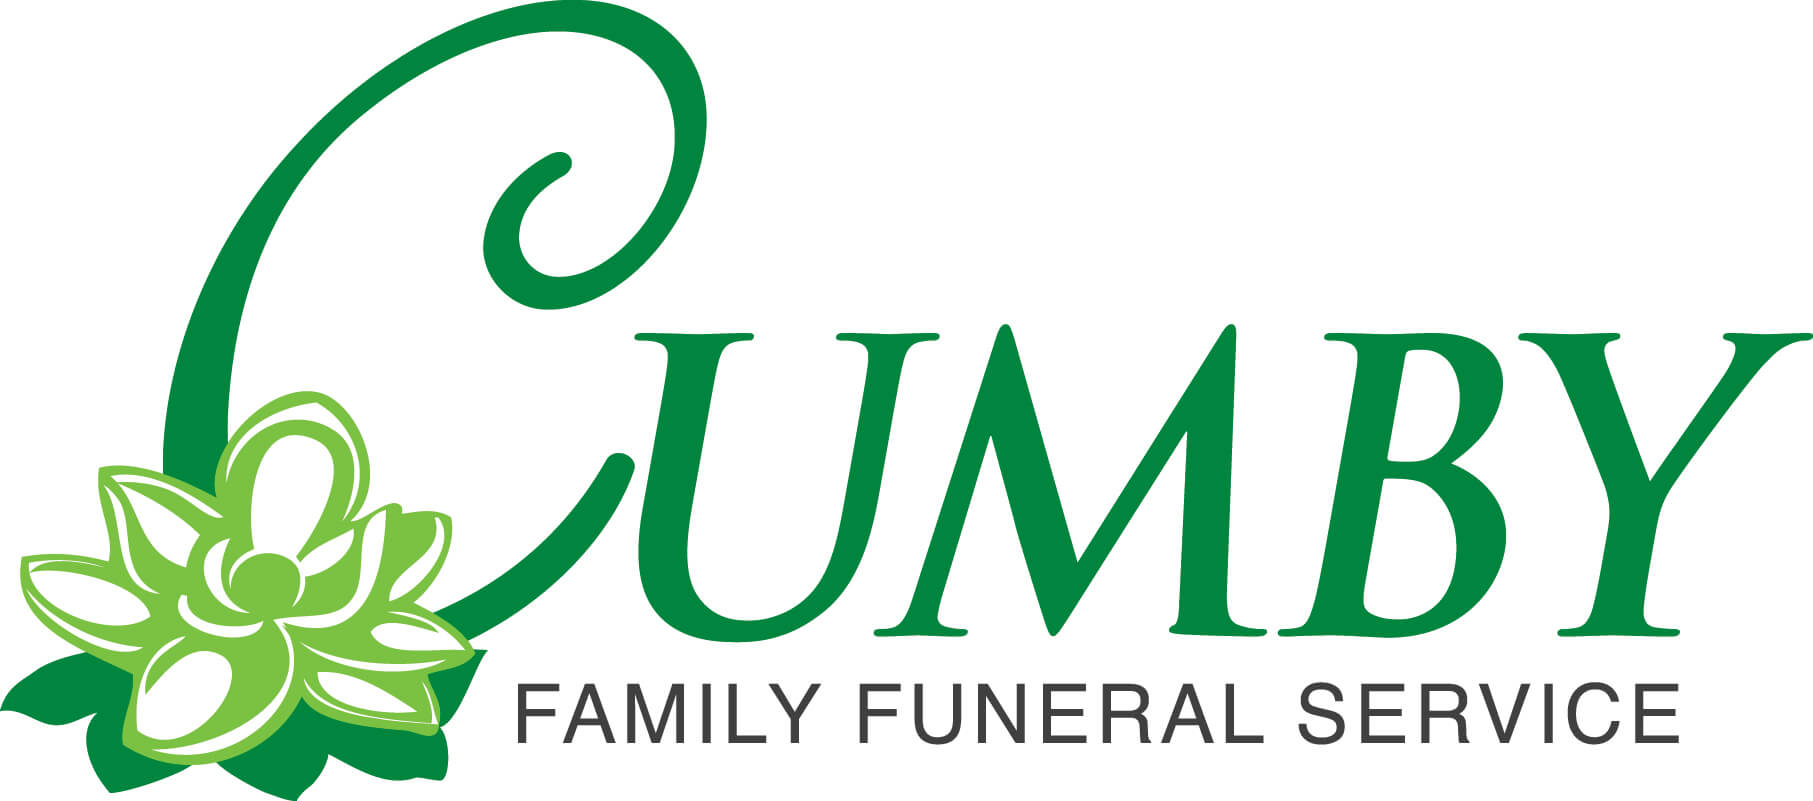 Cumby Family Funeral Service | High Point NC funeral home and ...